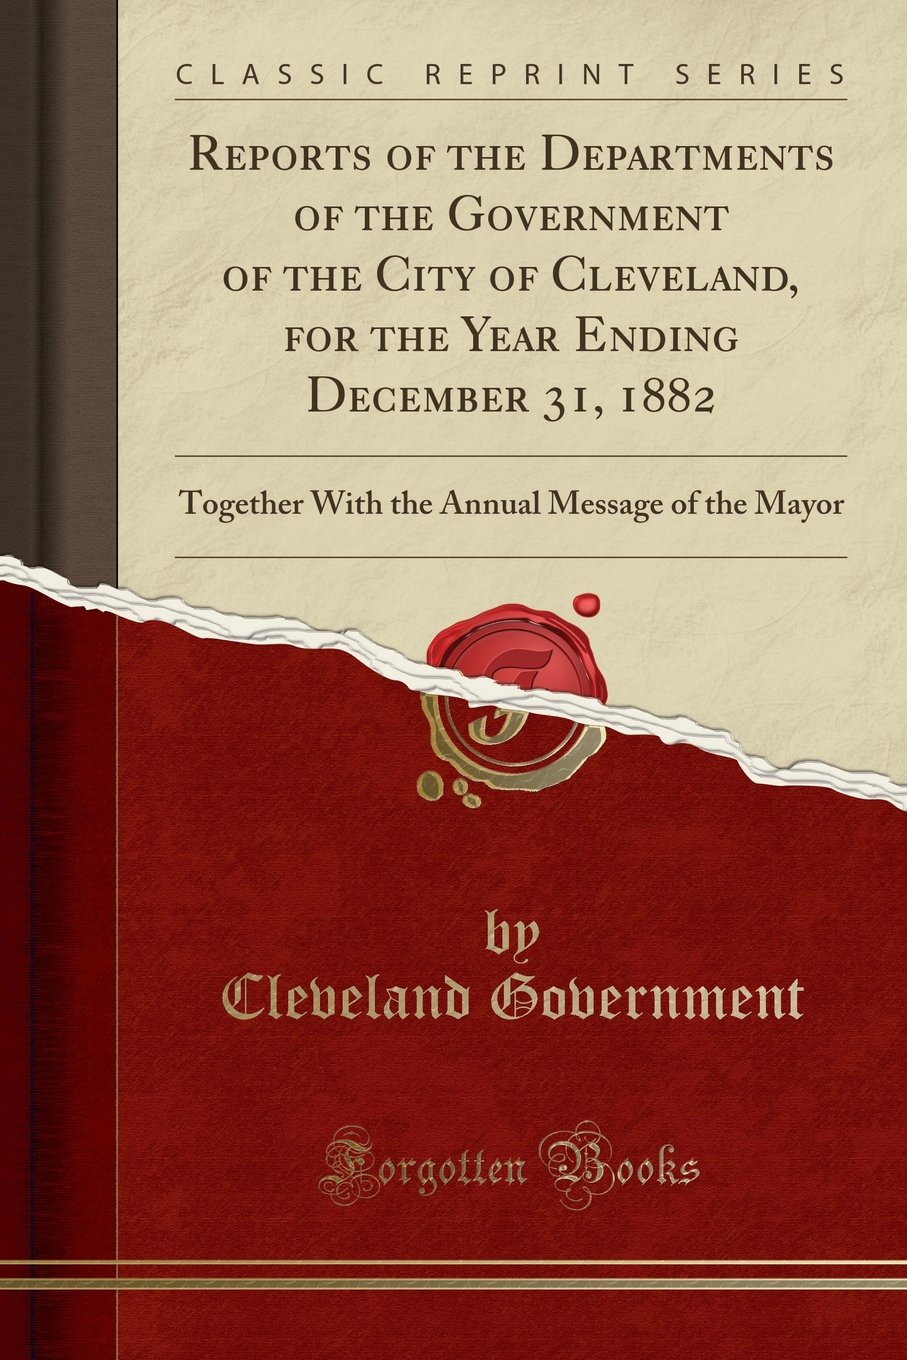 Reports of the Departments of the Government of the City of Cleveland, for the Year Ending December 31, 1882: Together With the Annual Message of the Mayor (Classic Reprint) ebook